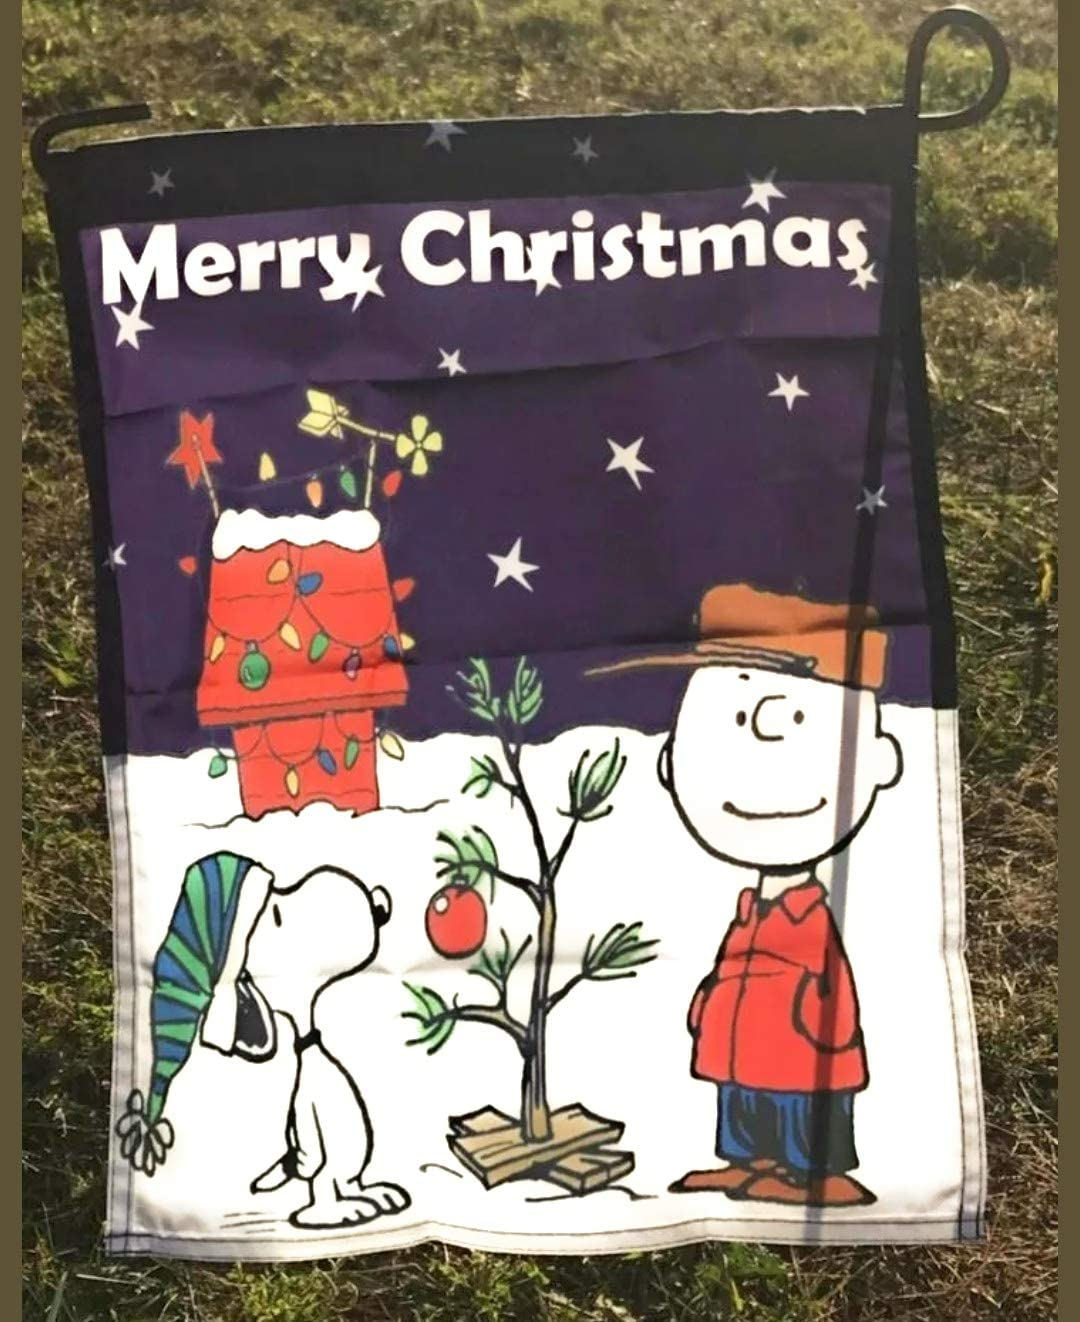 Snoopy Peanuts Charlie Brown Holiday Merry Christmas 14 x 18 inches Garden Flag